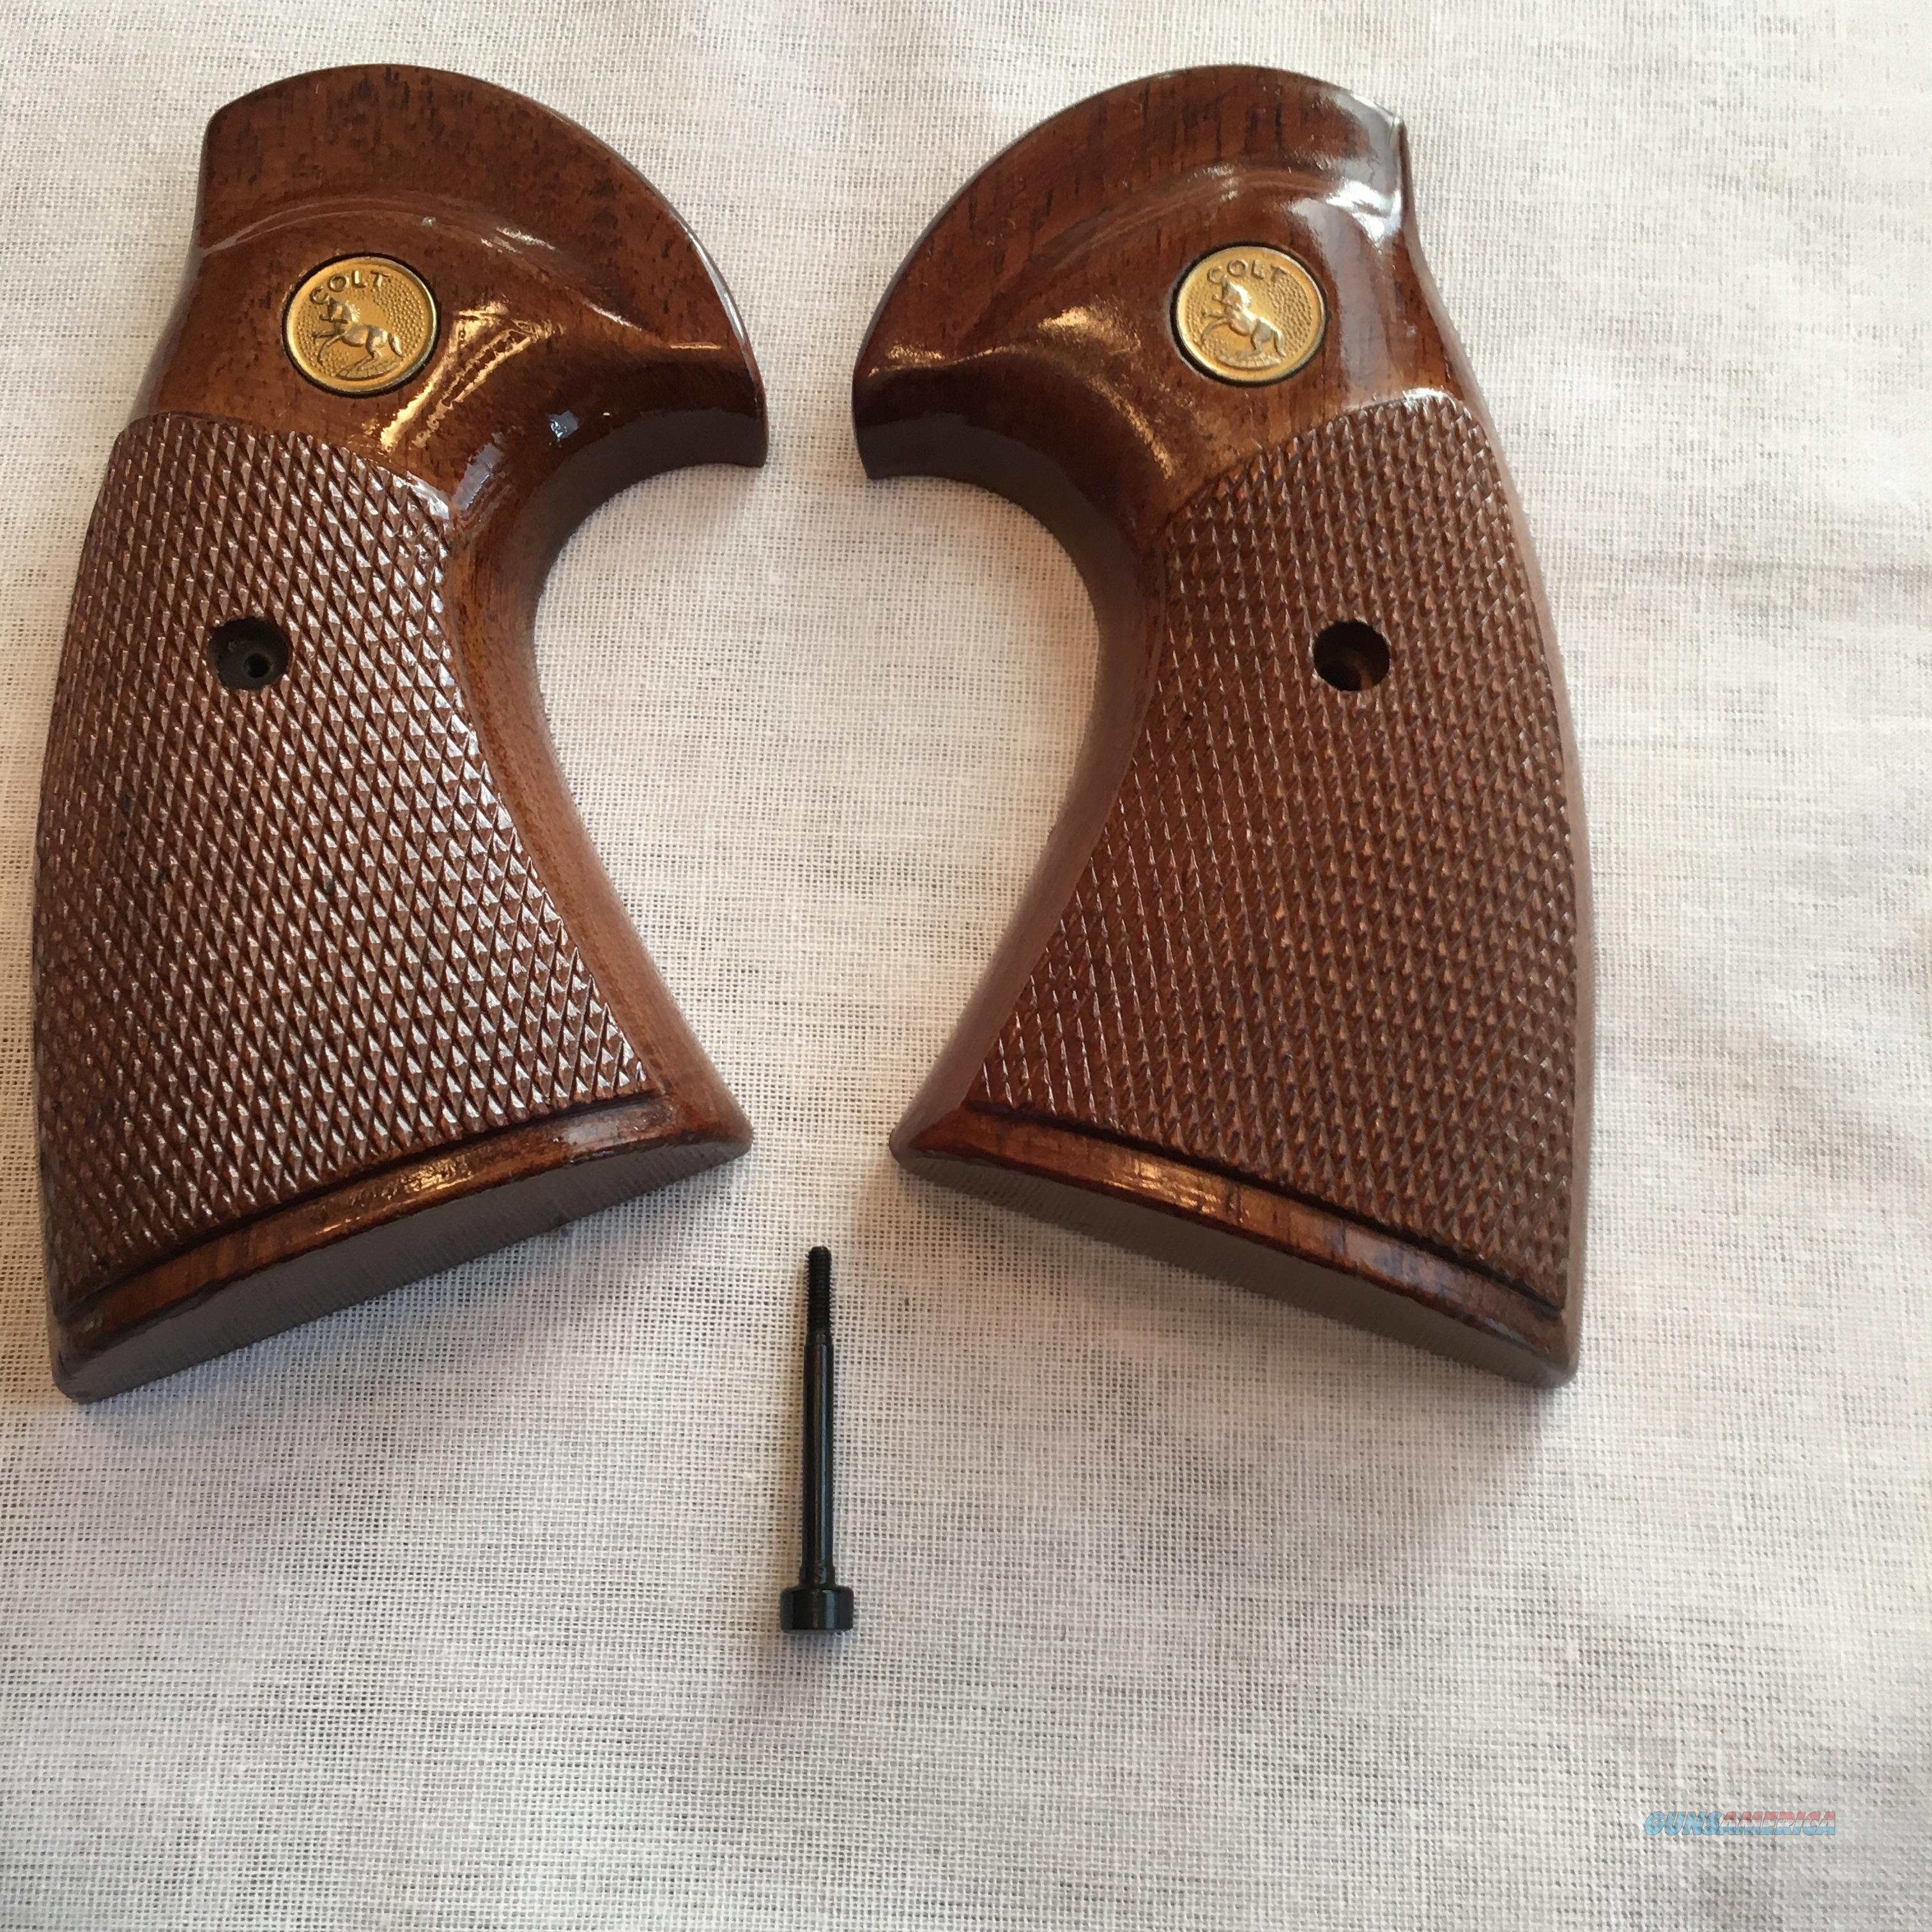 COLT PYTHON FACTORY WOOD GRIPS for sale